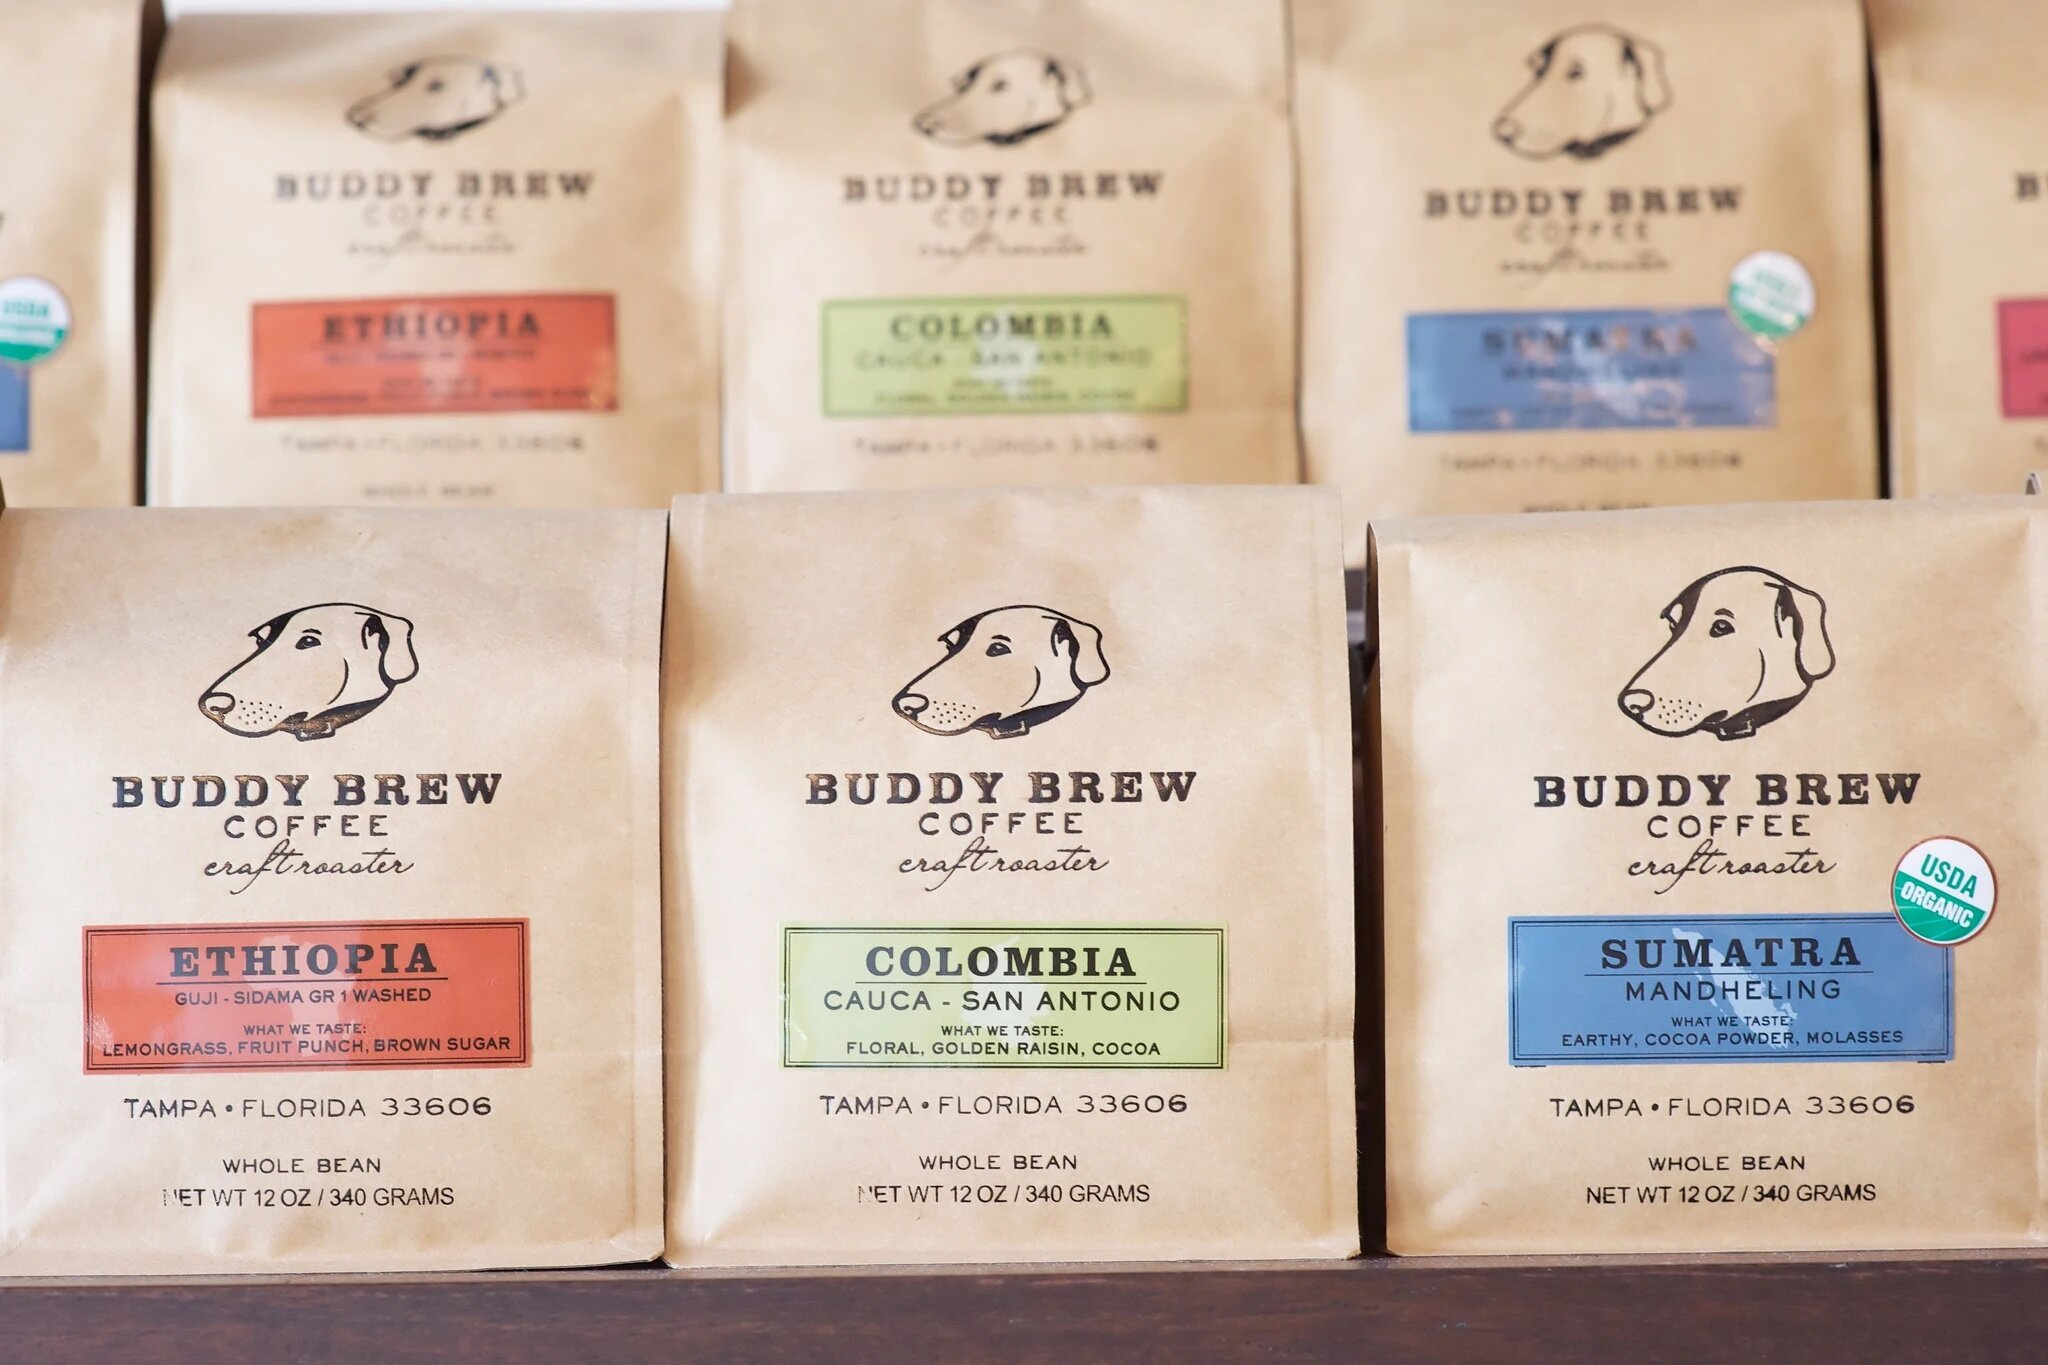 Buddy Brew Coffee Is Finally Opening A Cafe In St Pete St Pete Rising